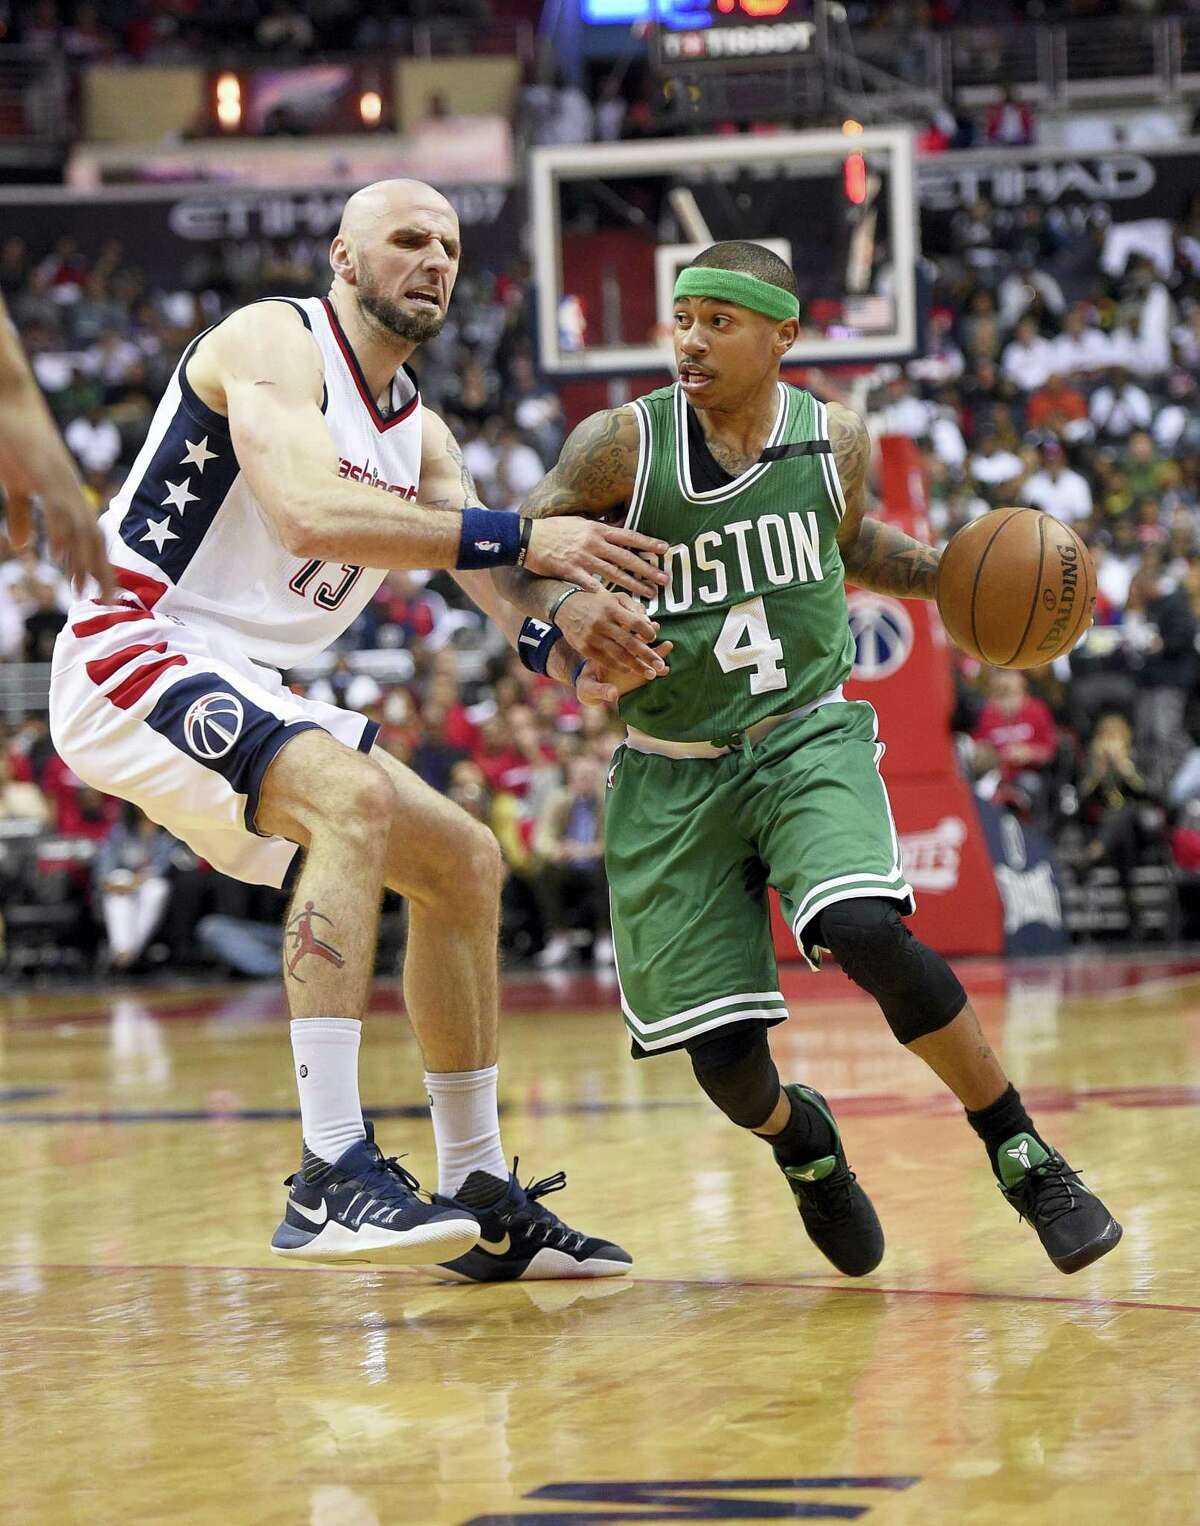 Celtics guard Isaiah Thomas (4) dribbles against Wizards center Marcin Gortat during Game 4 on Sunday.